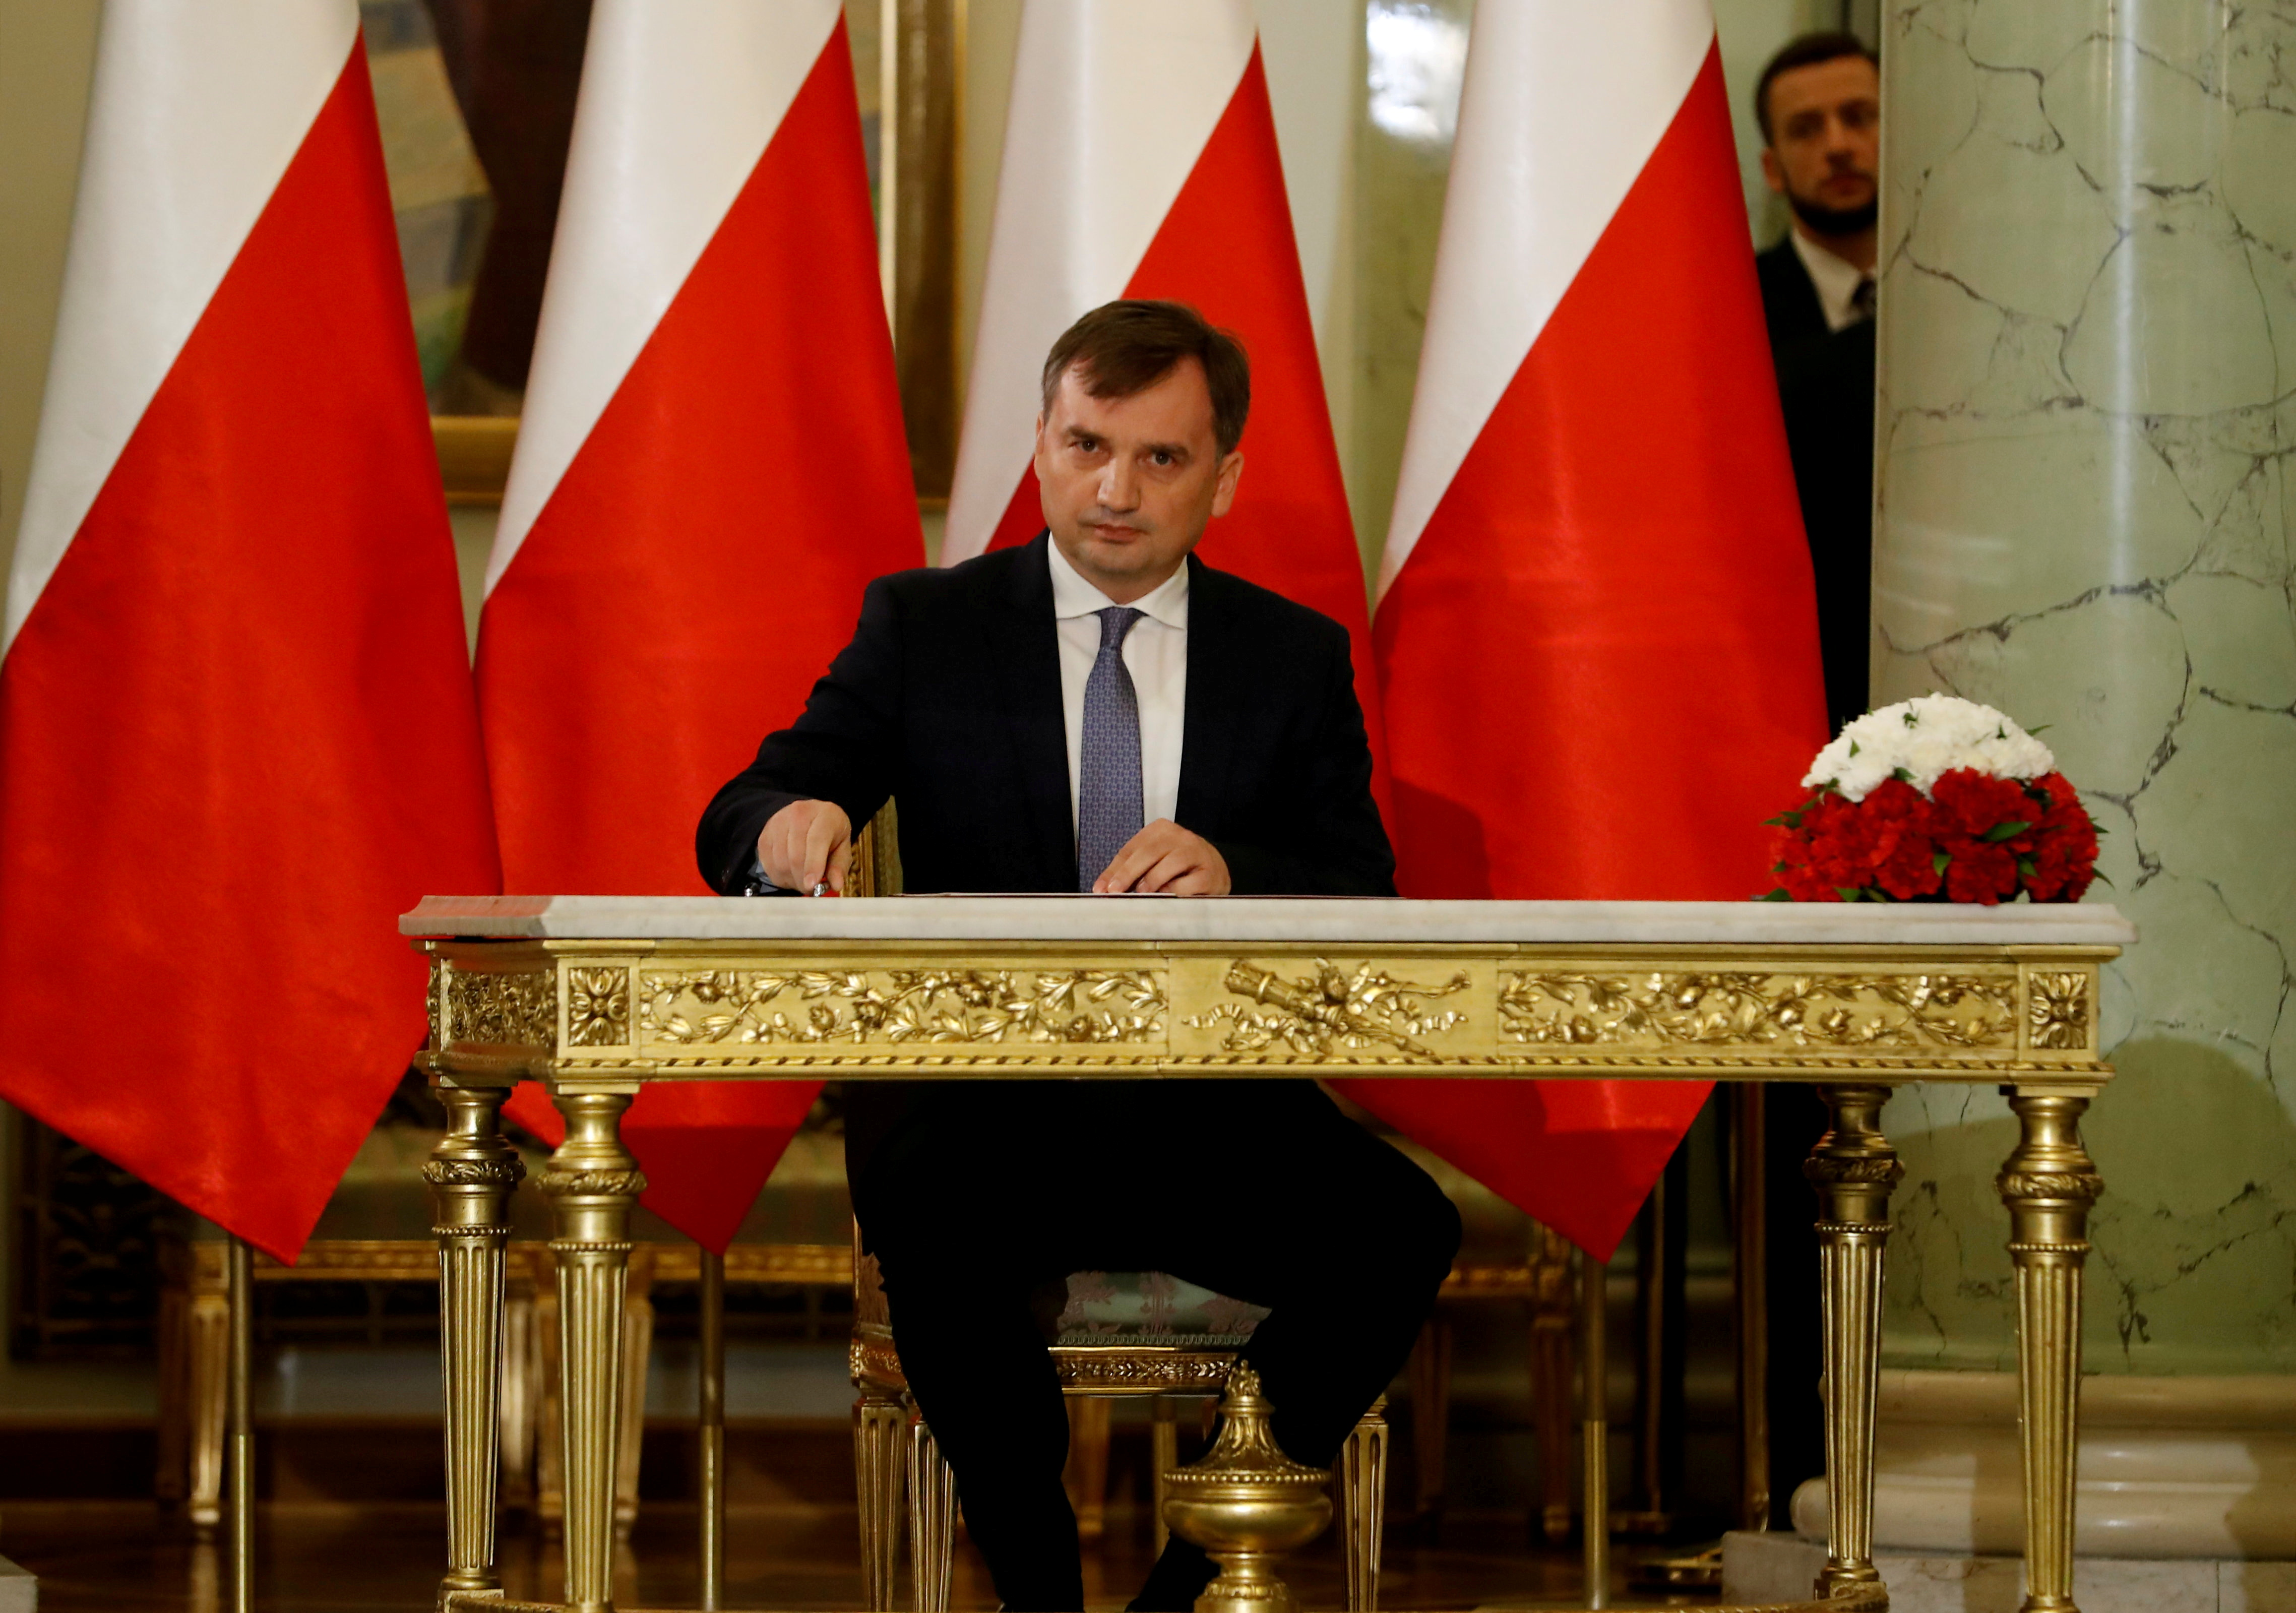 Zbigniew Ziobro signs documents after being designated as Minister of Justice, at the Presidential Palace in Warsaw, Poland November 15, 2019. REUTERS/Kacper Pempel/File Photo